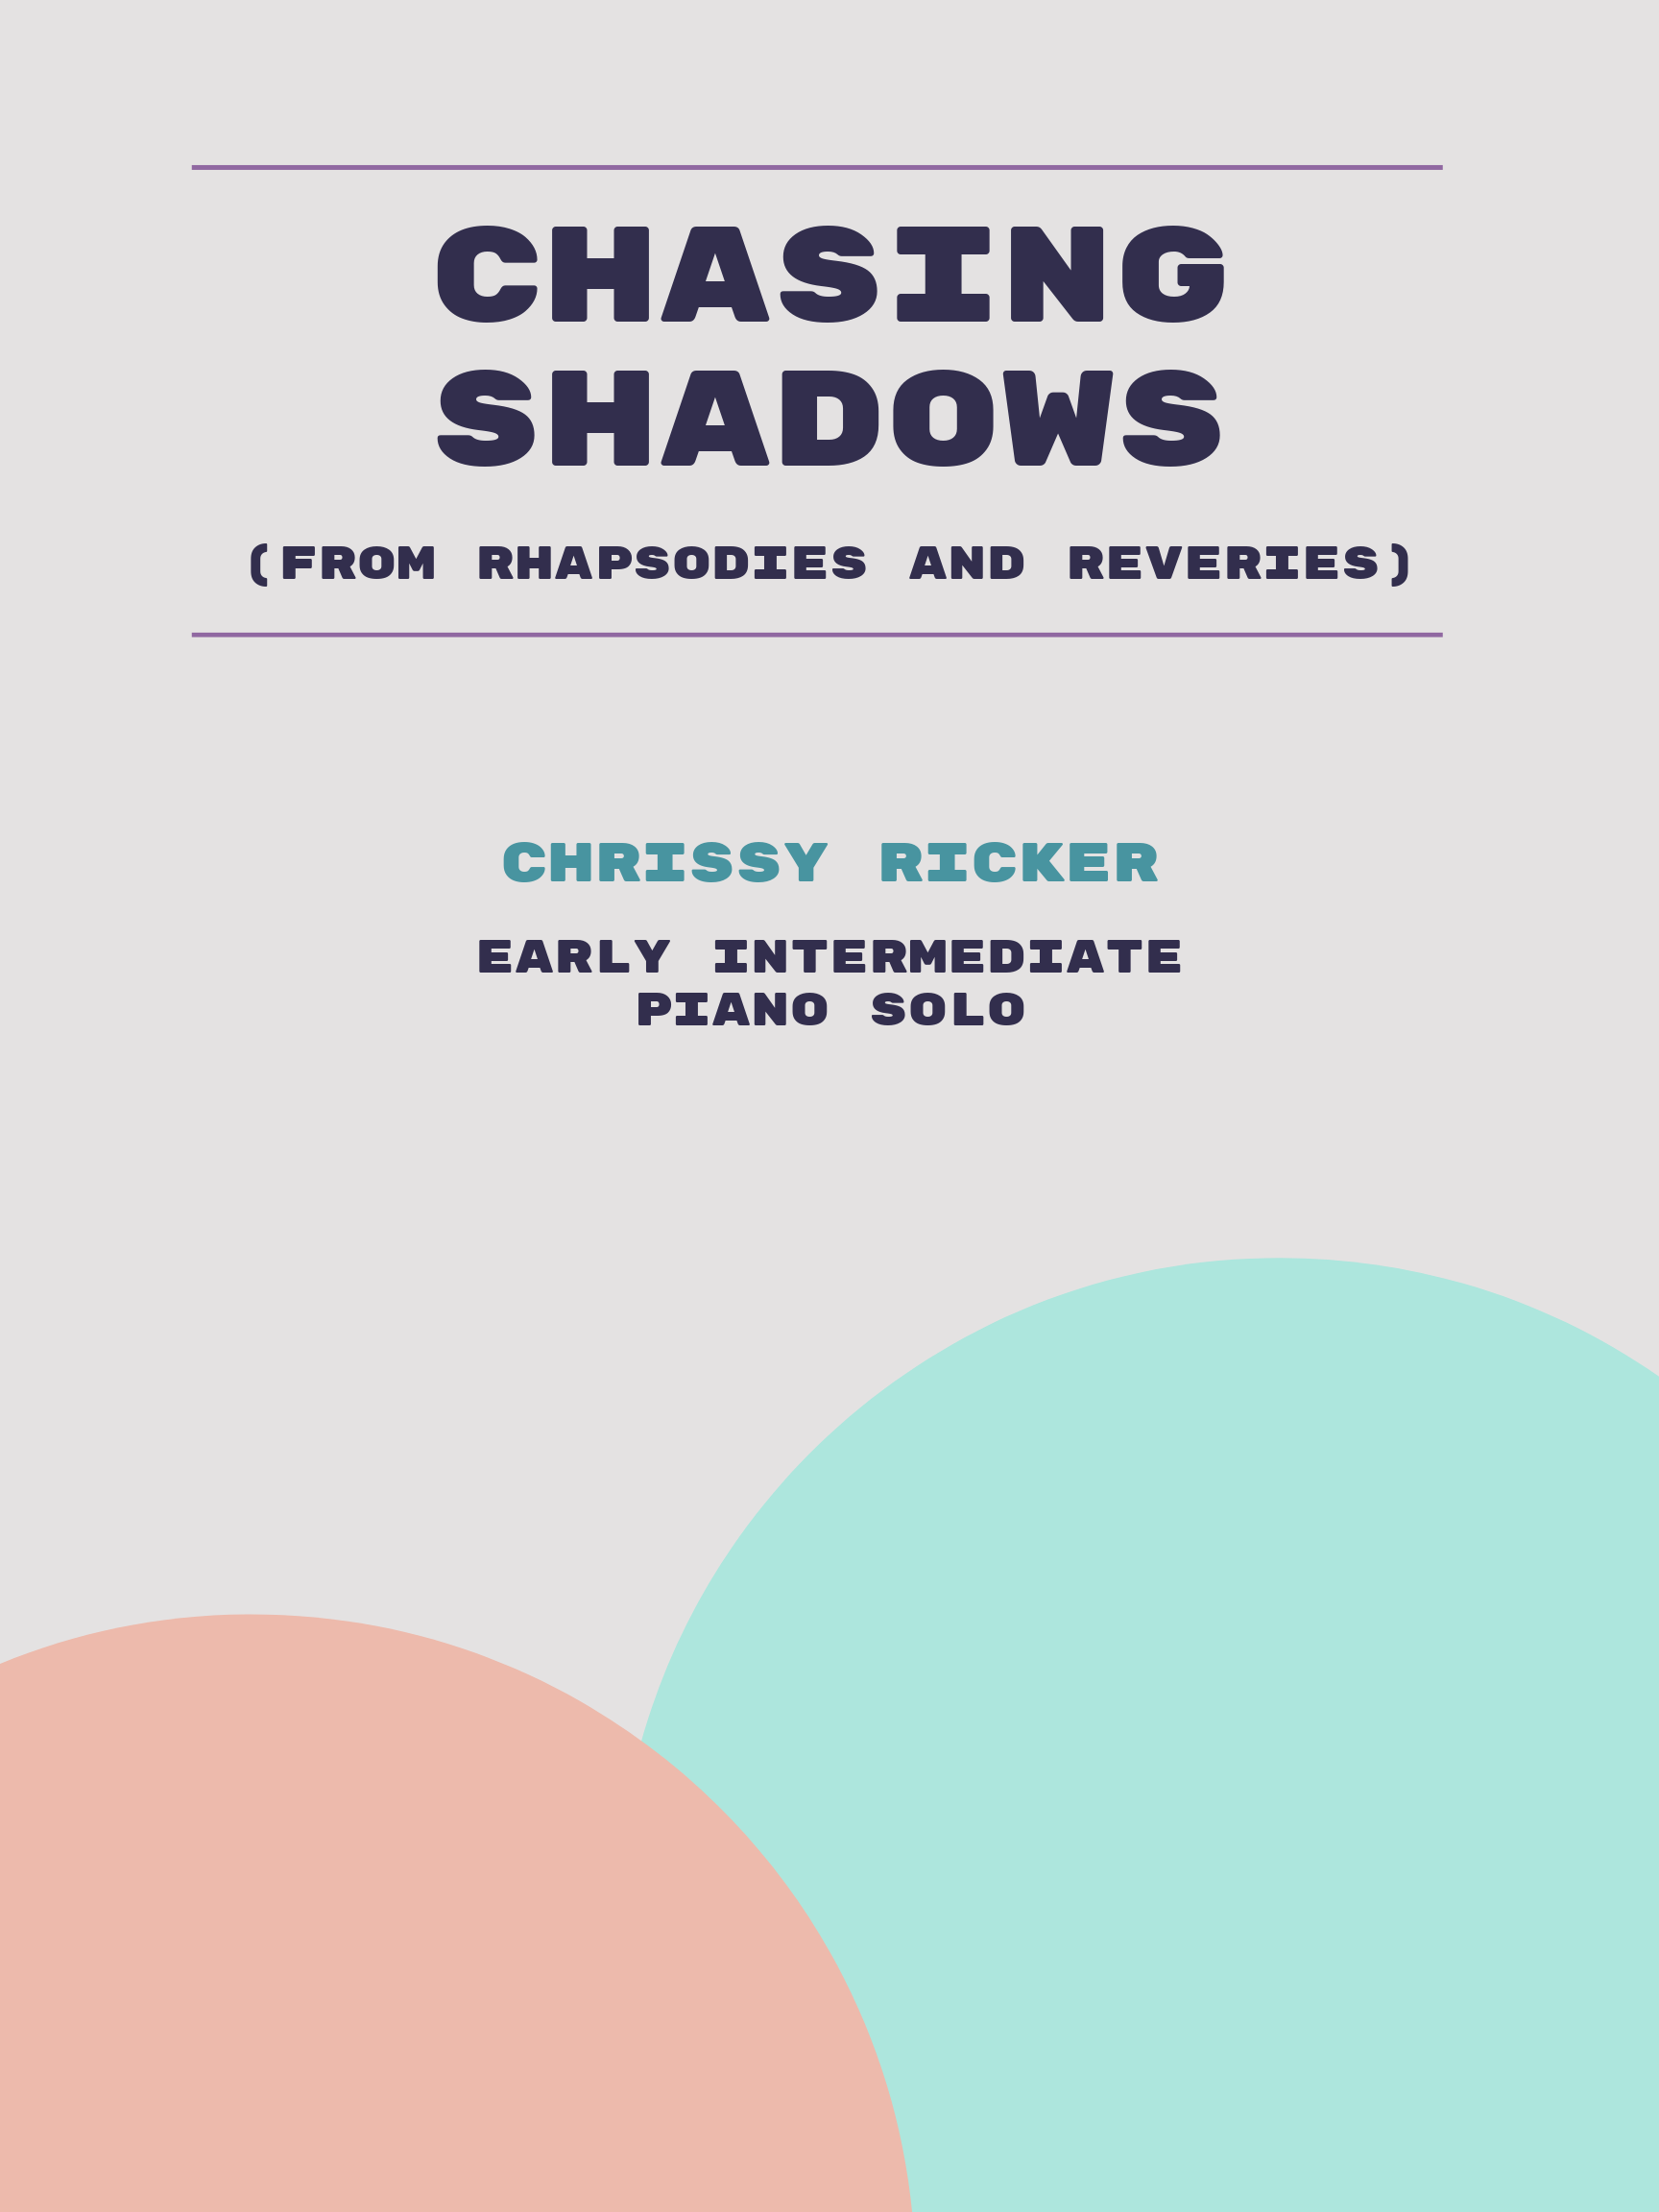 Chasing Shadows by Chrissy Ricker